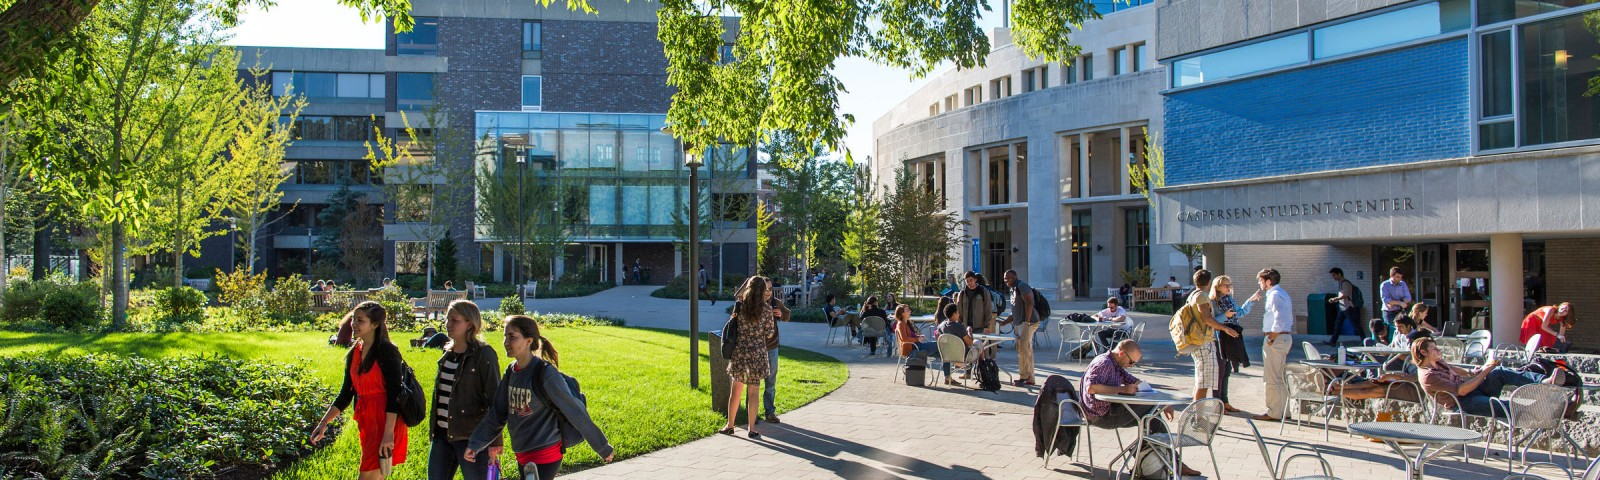 Students walking on campus on a sunny day